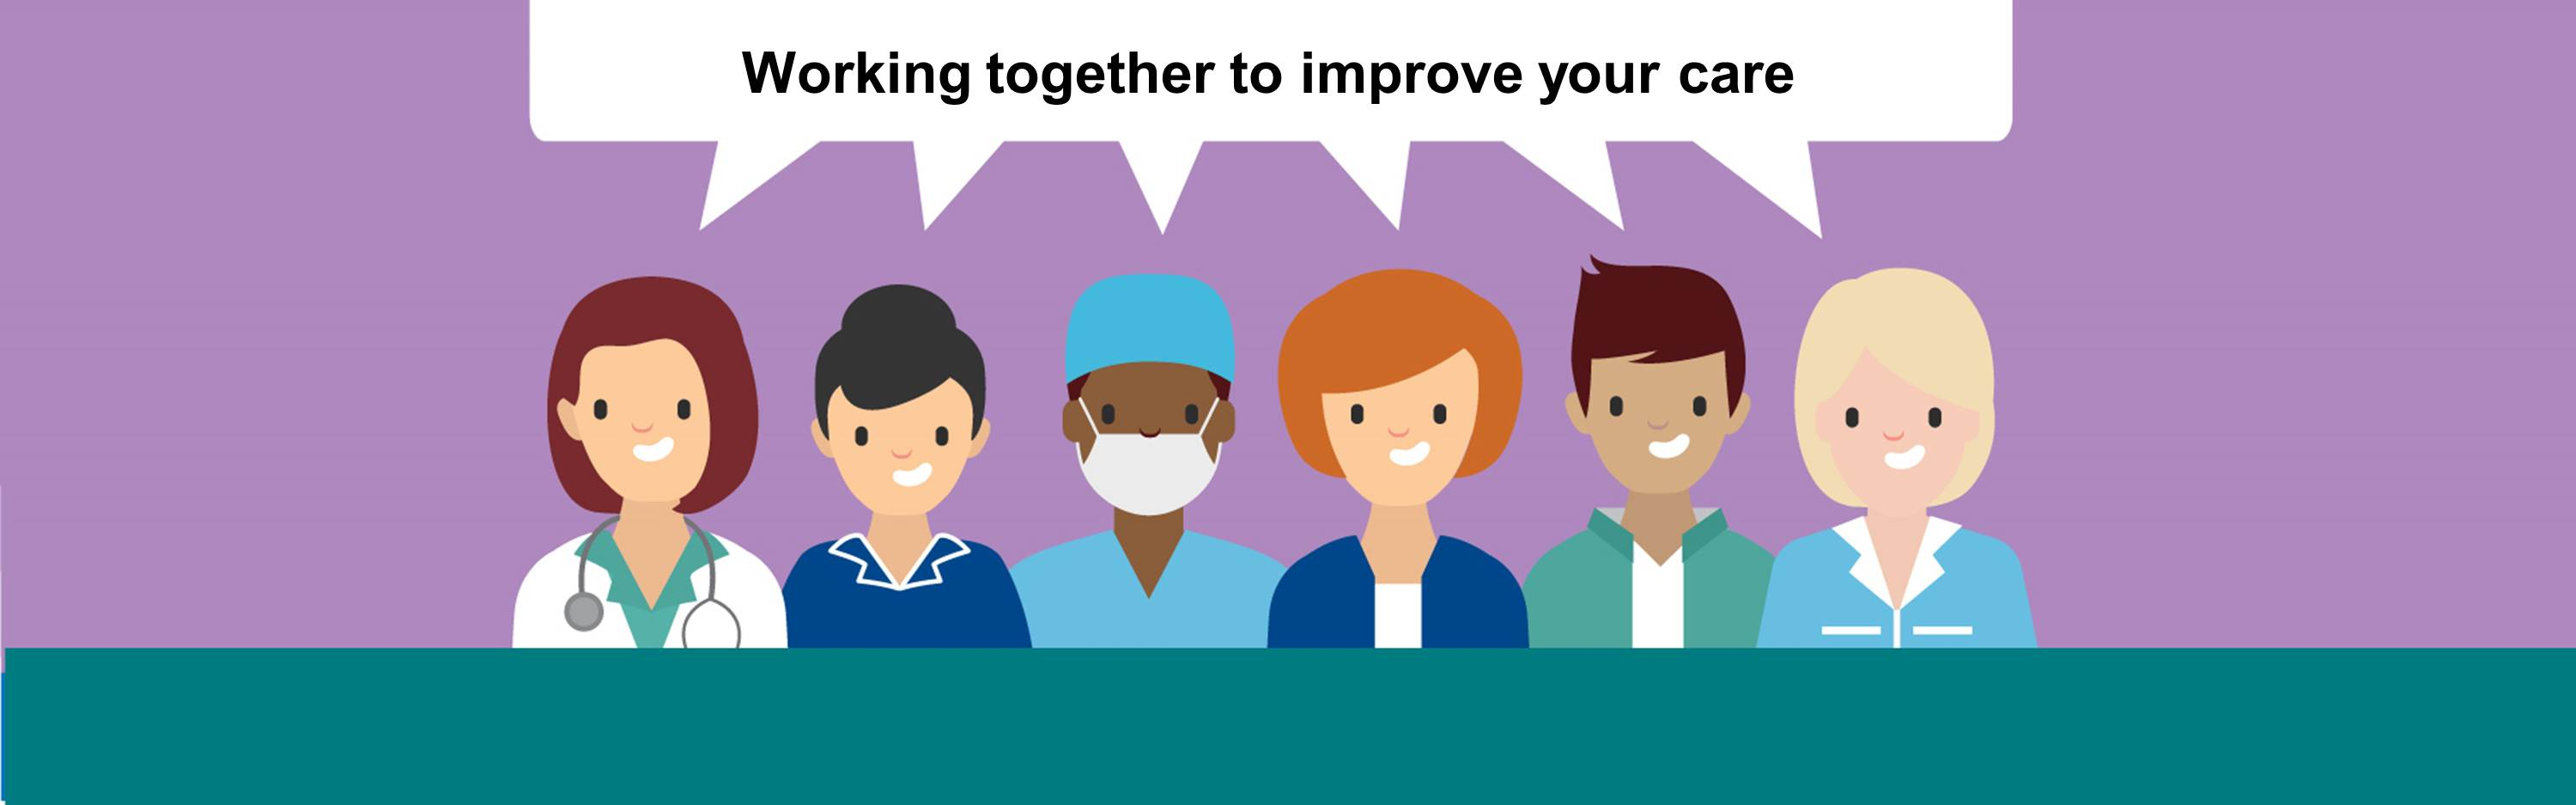 Cartoon 2D characters smiling with a speech bubble above stating'Working together to improve your care'